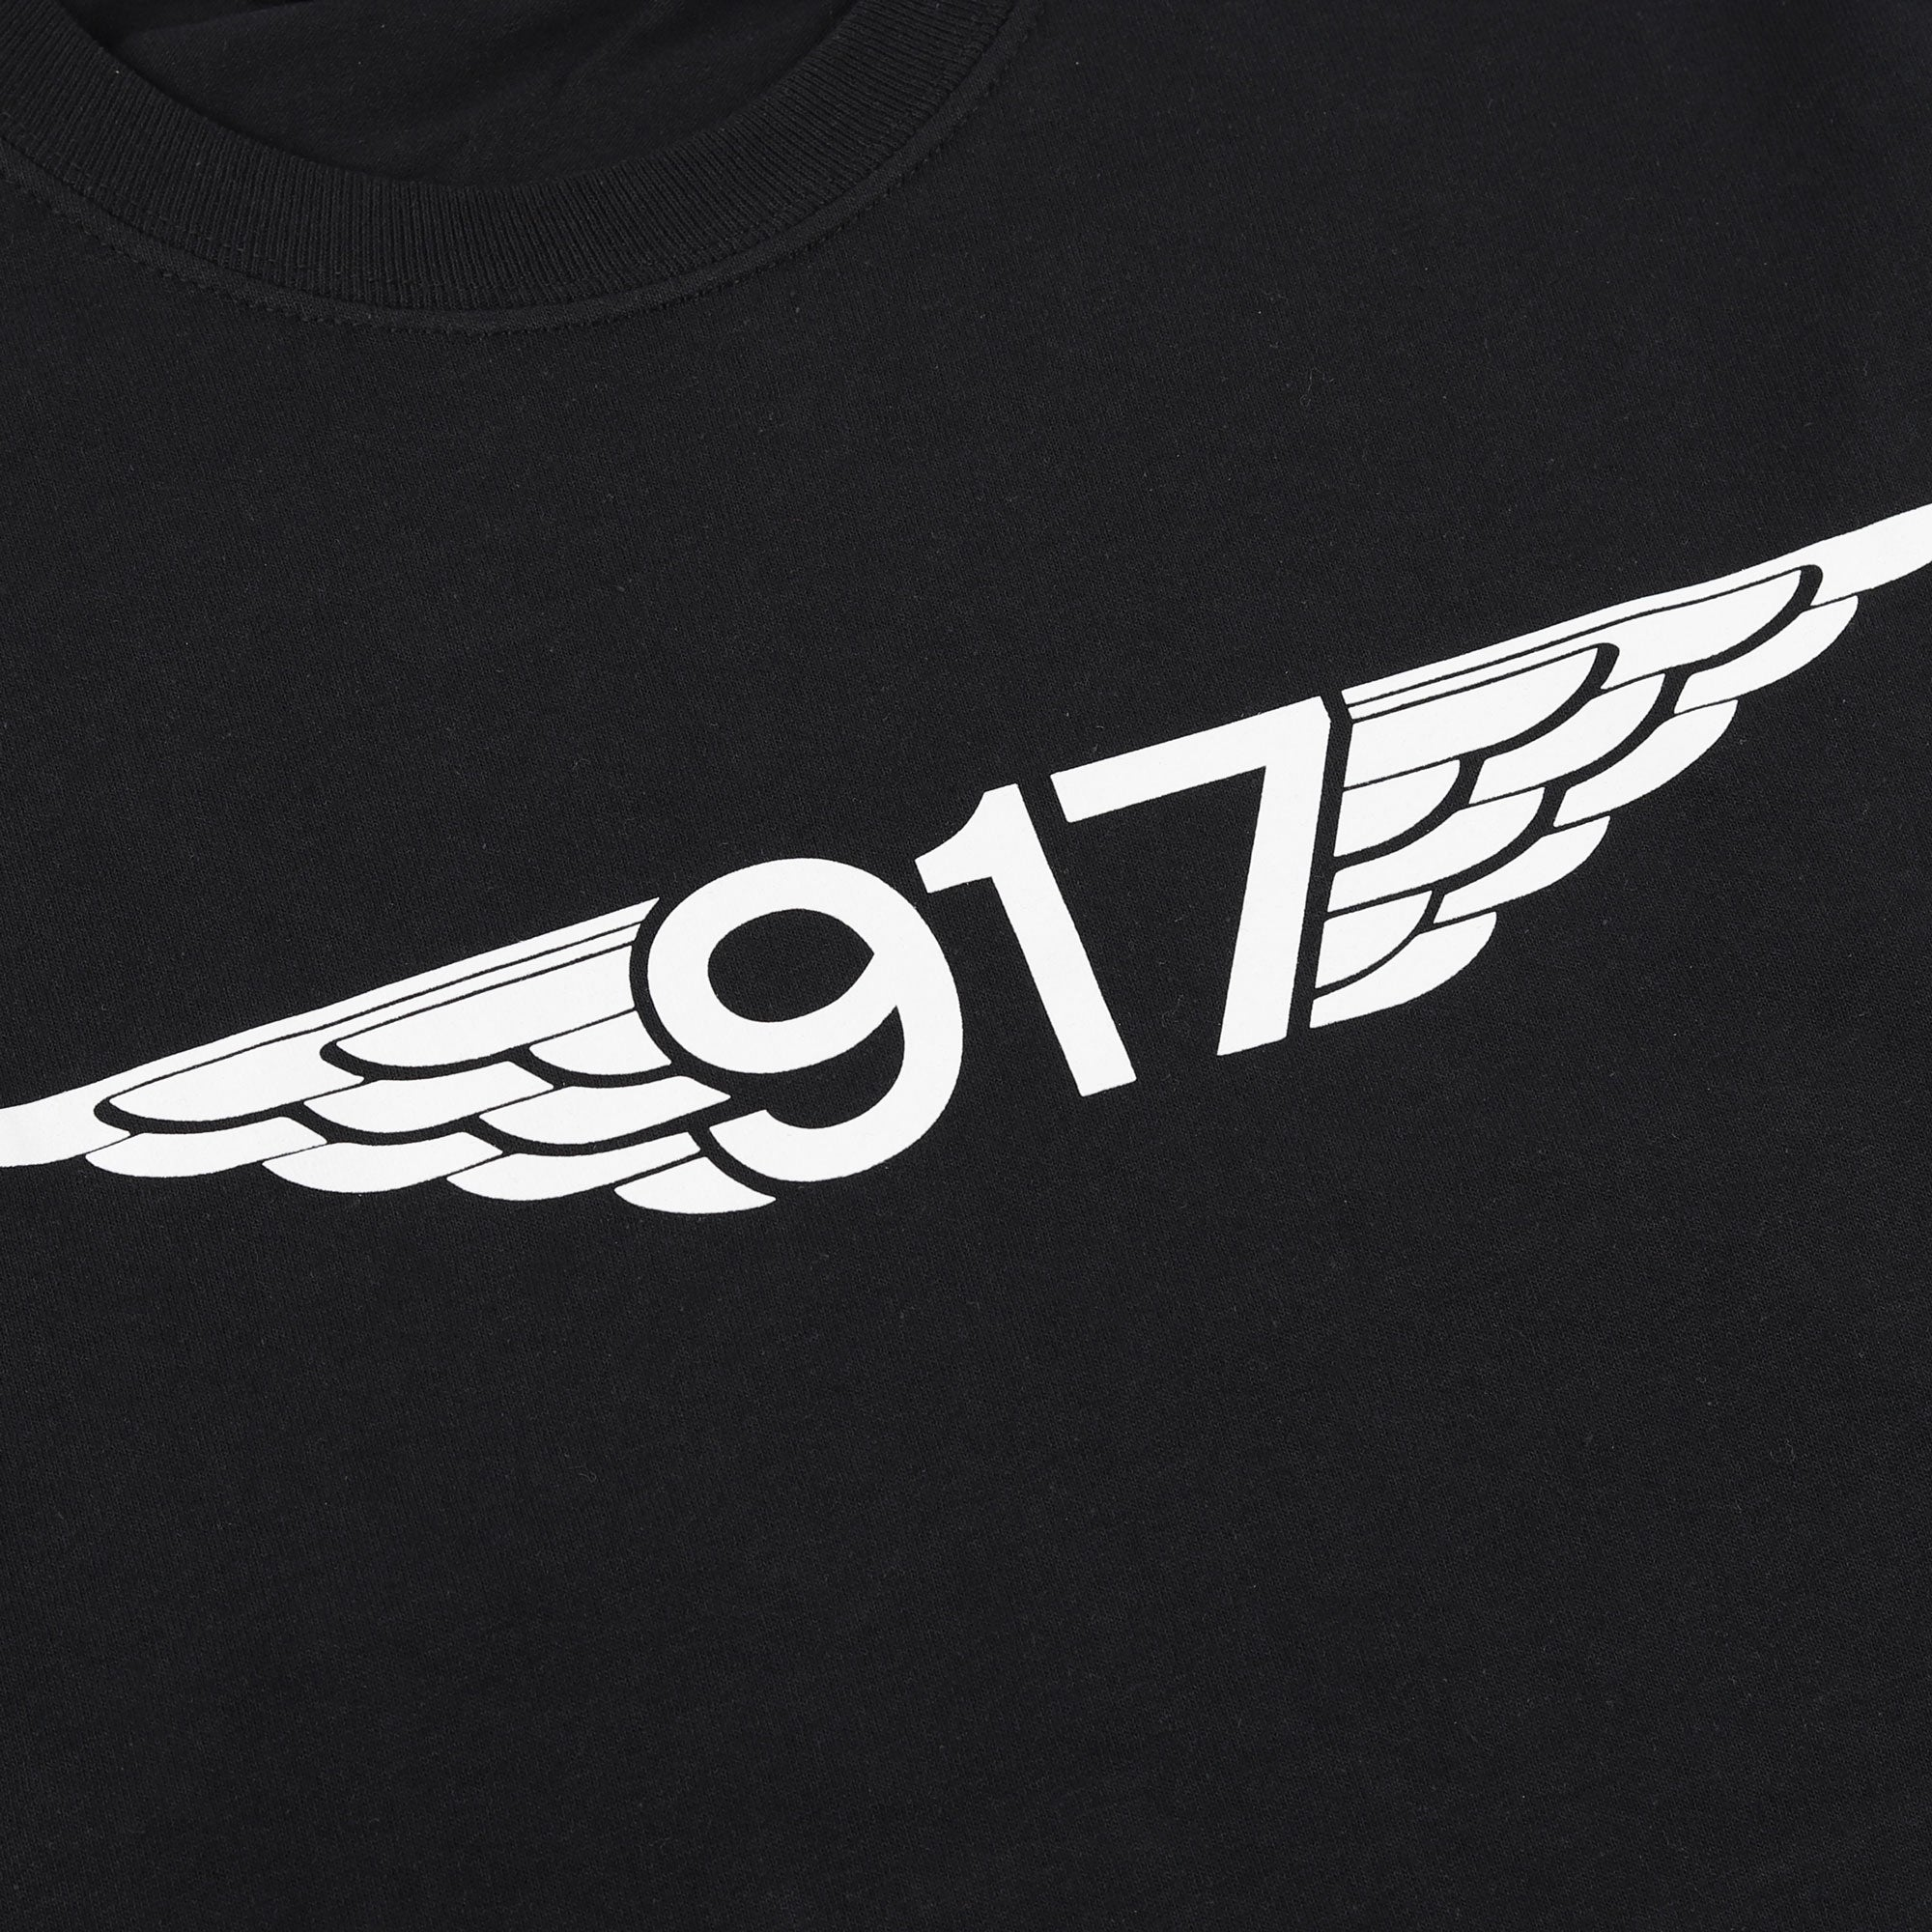 Call Me 917 Team Wings L/S Tee Product Photo #2